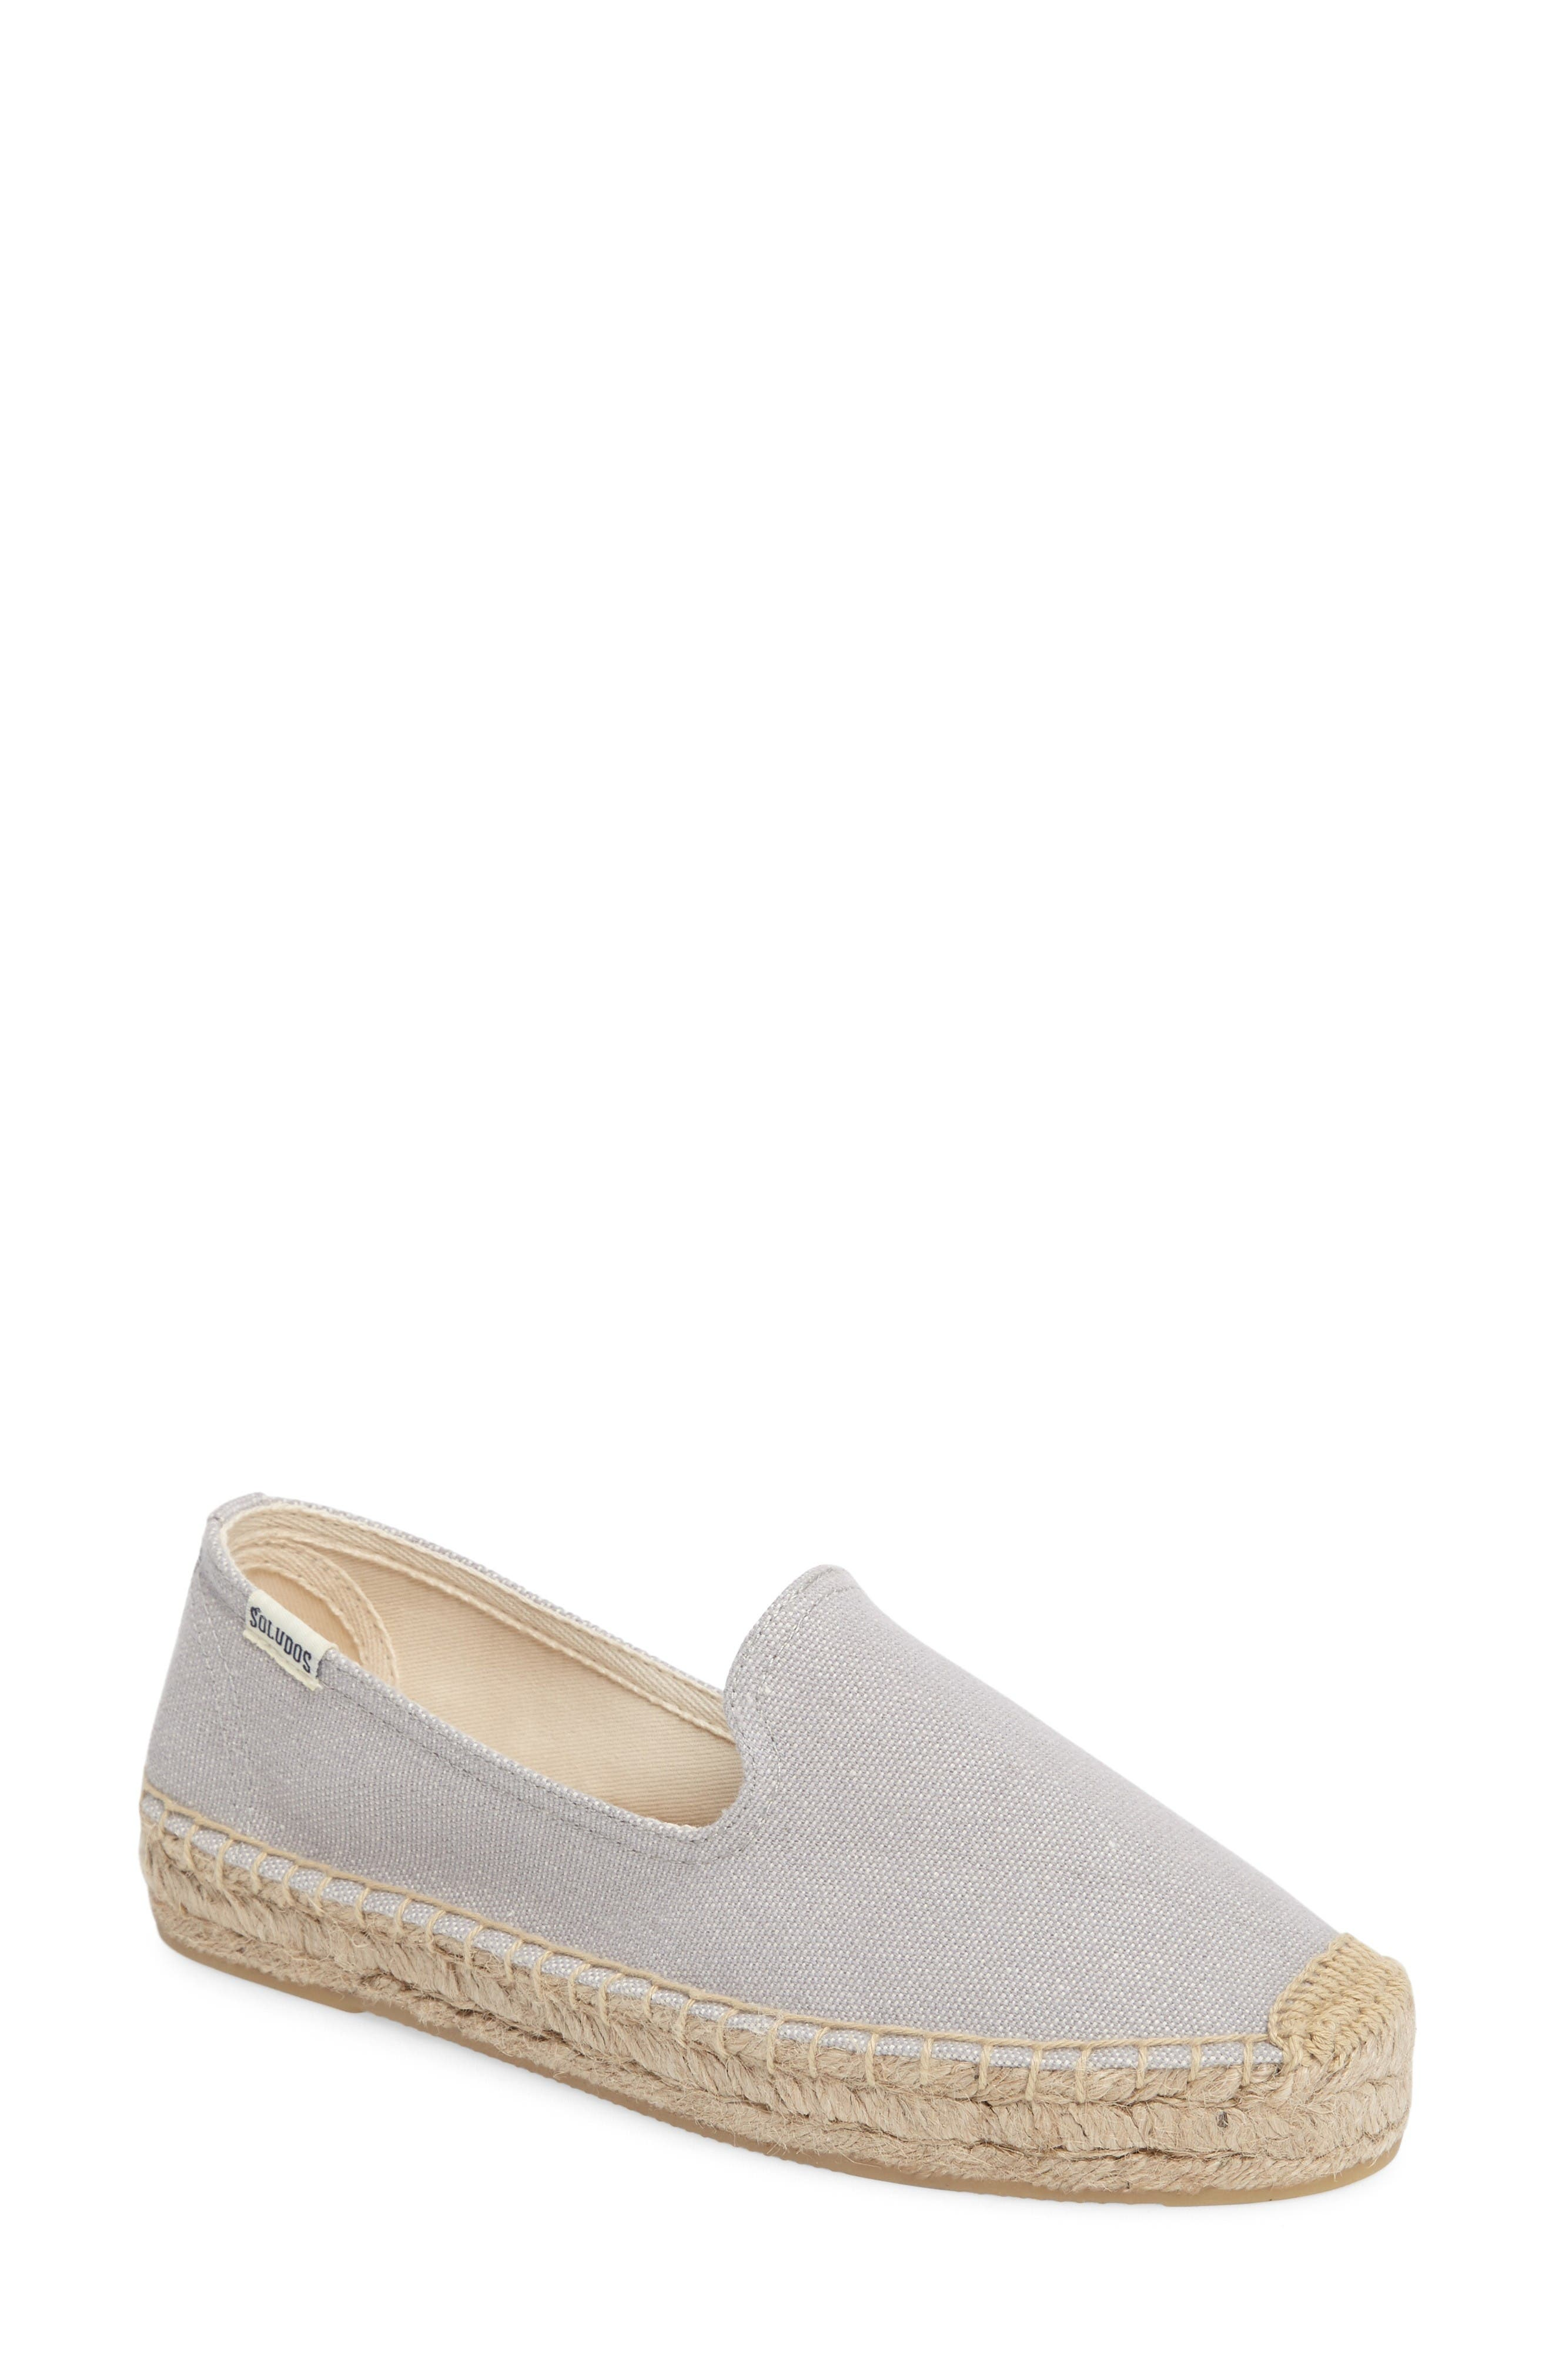 Alternate Image 1 Selected - Soludos Espadrille Loafer (Women)